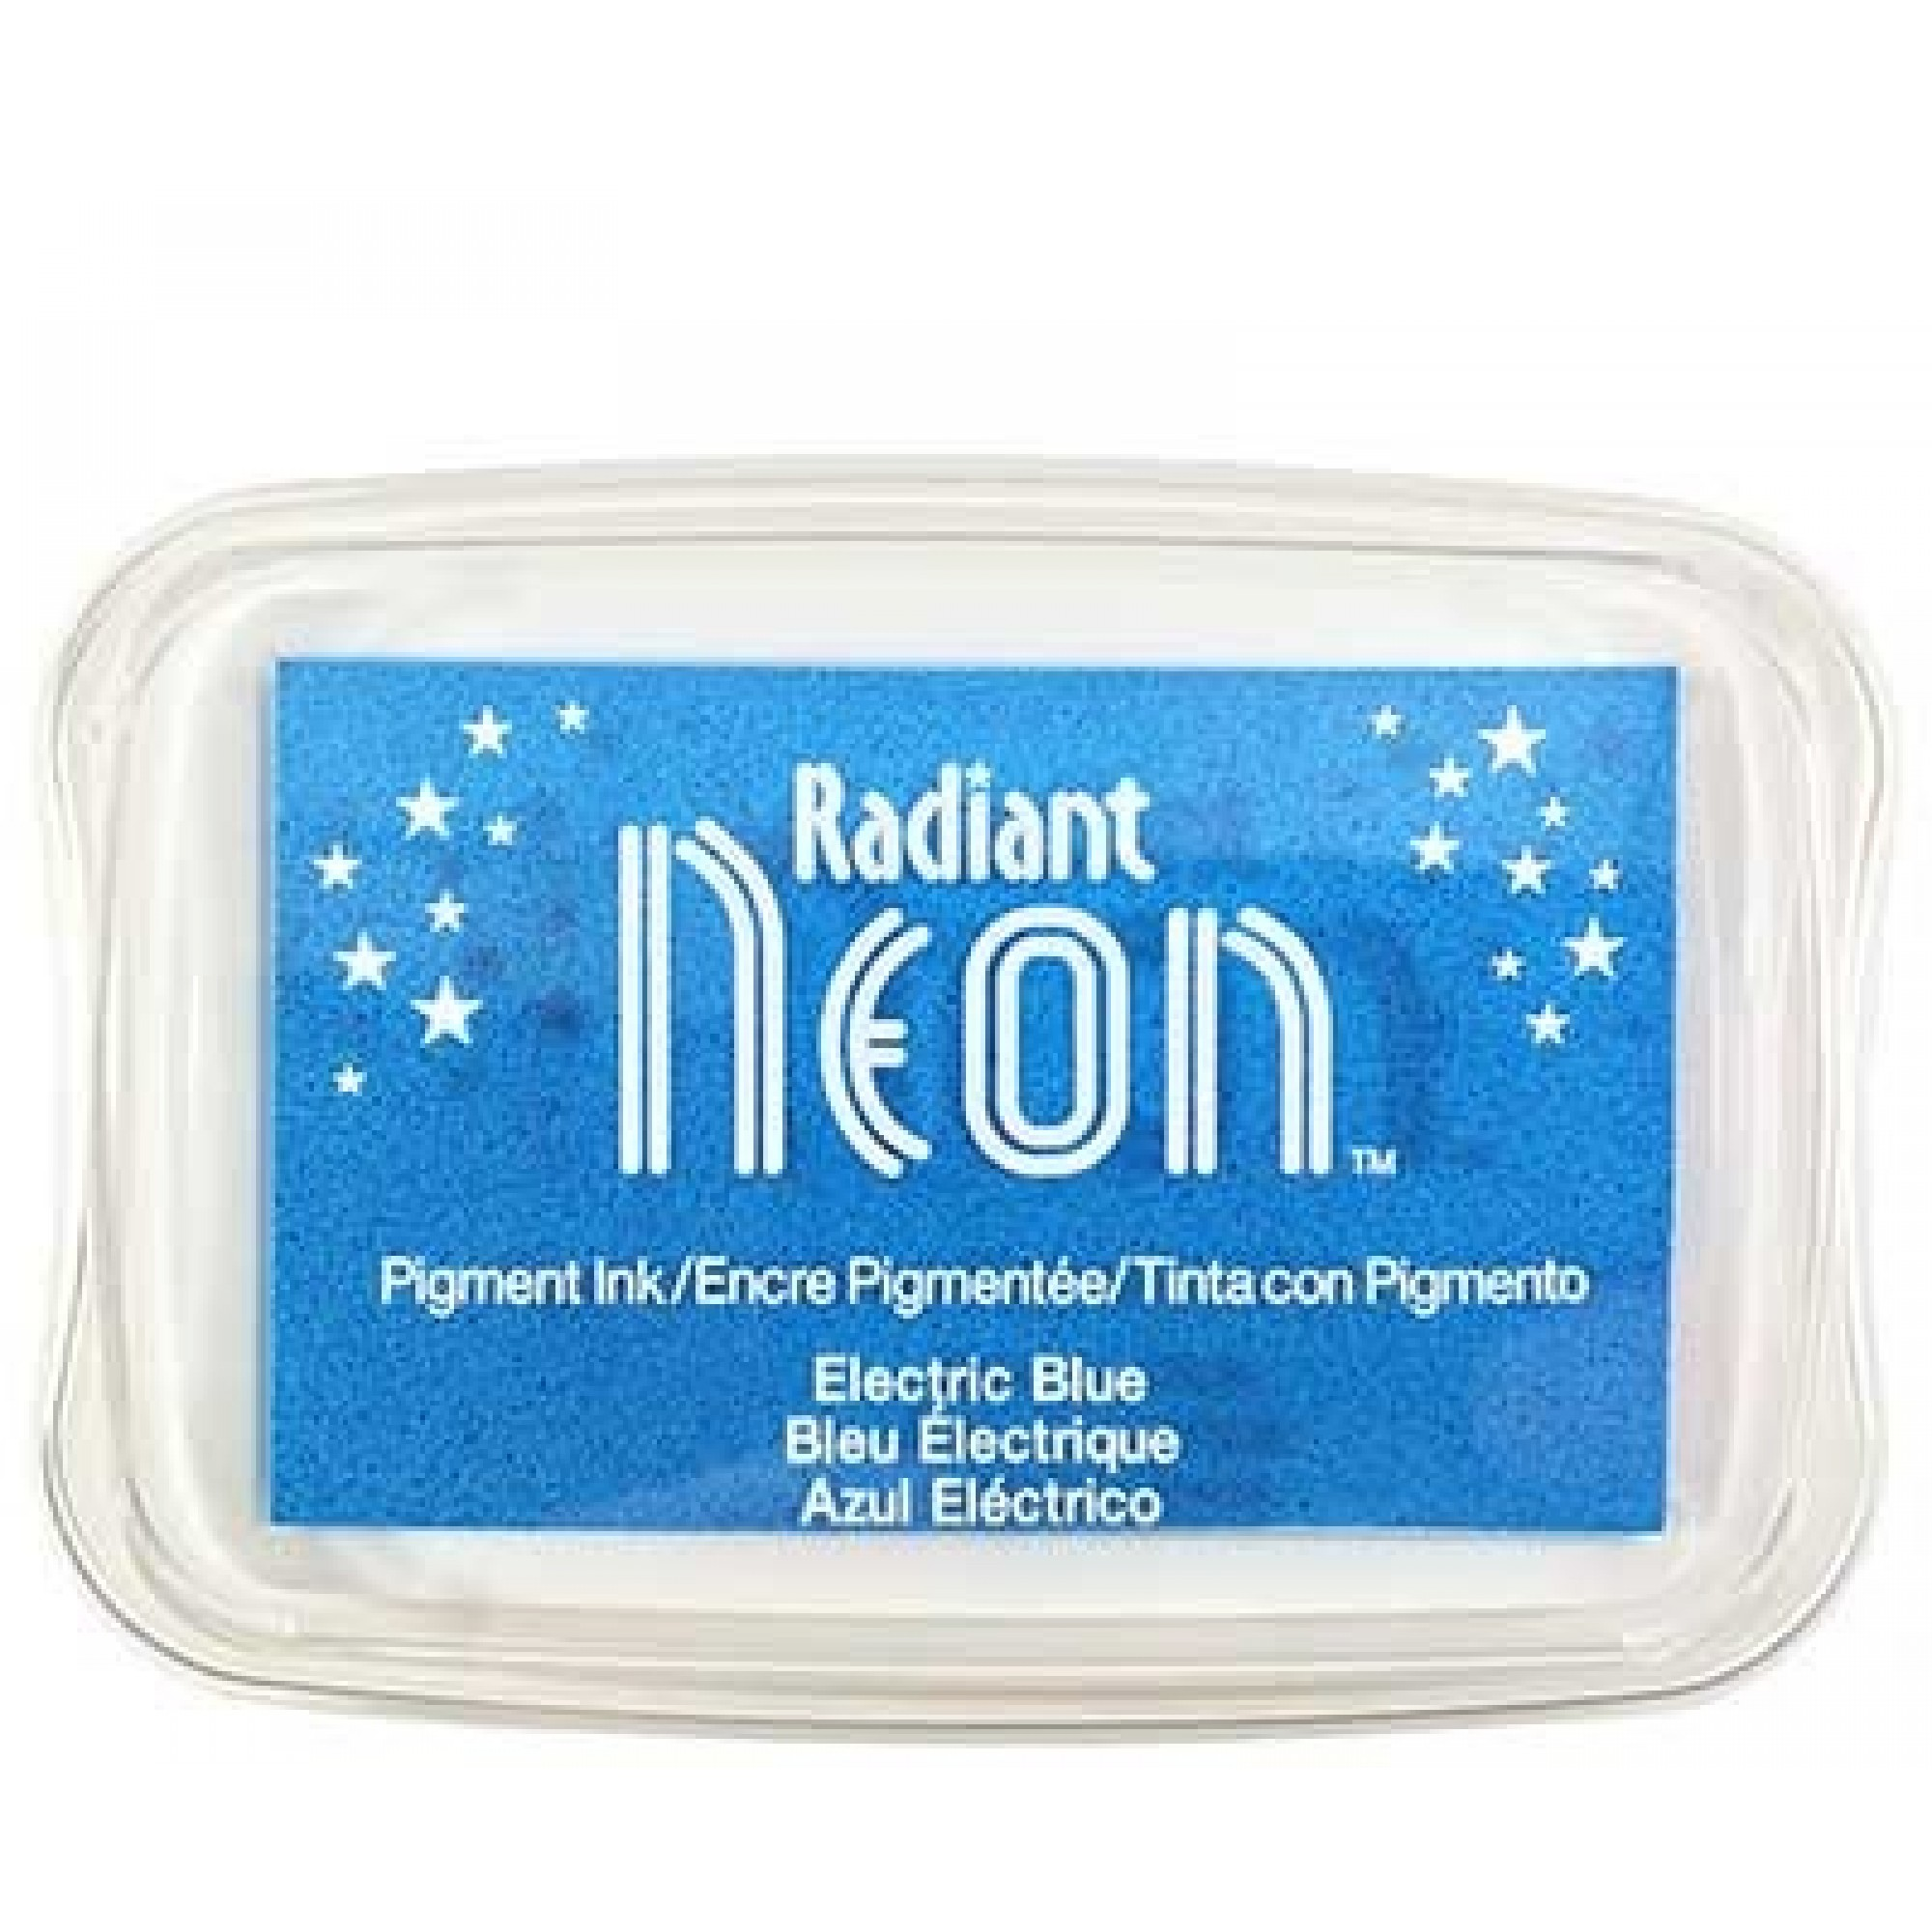 Radiant Neon - Electric Blue